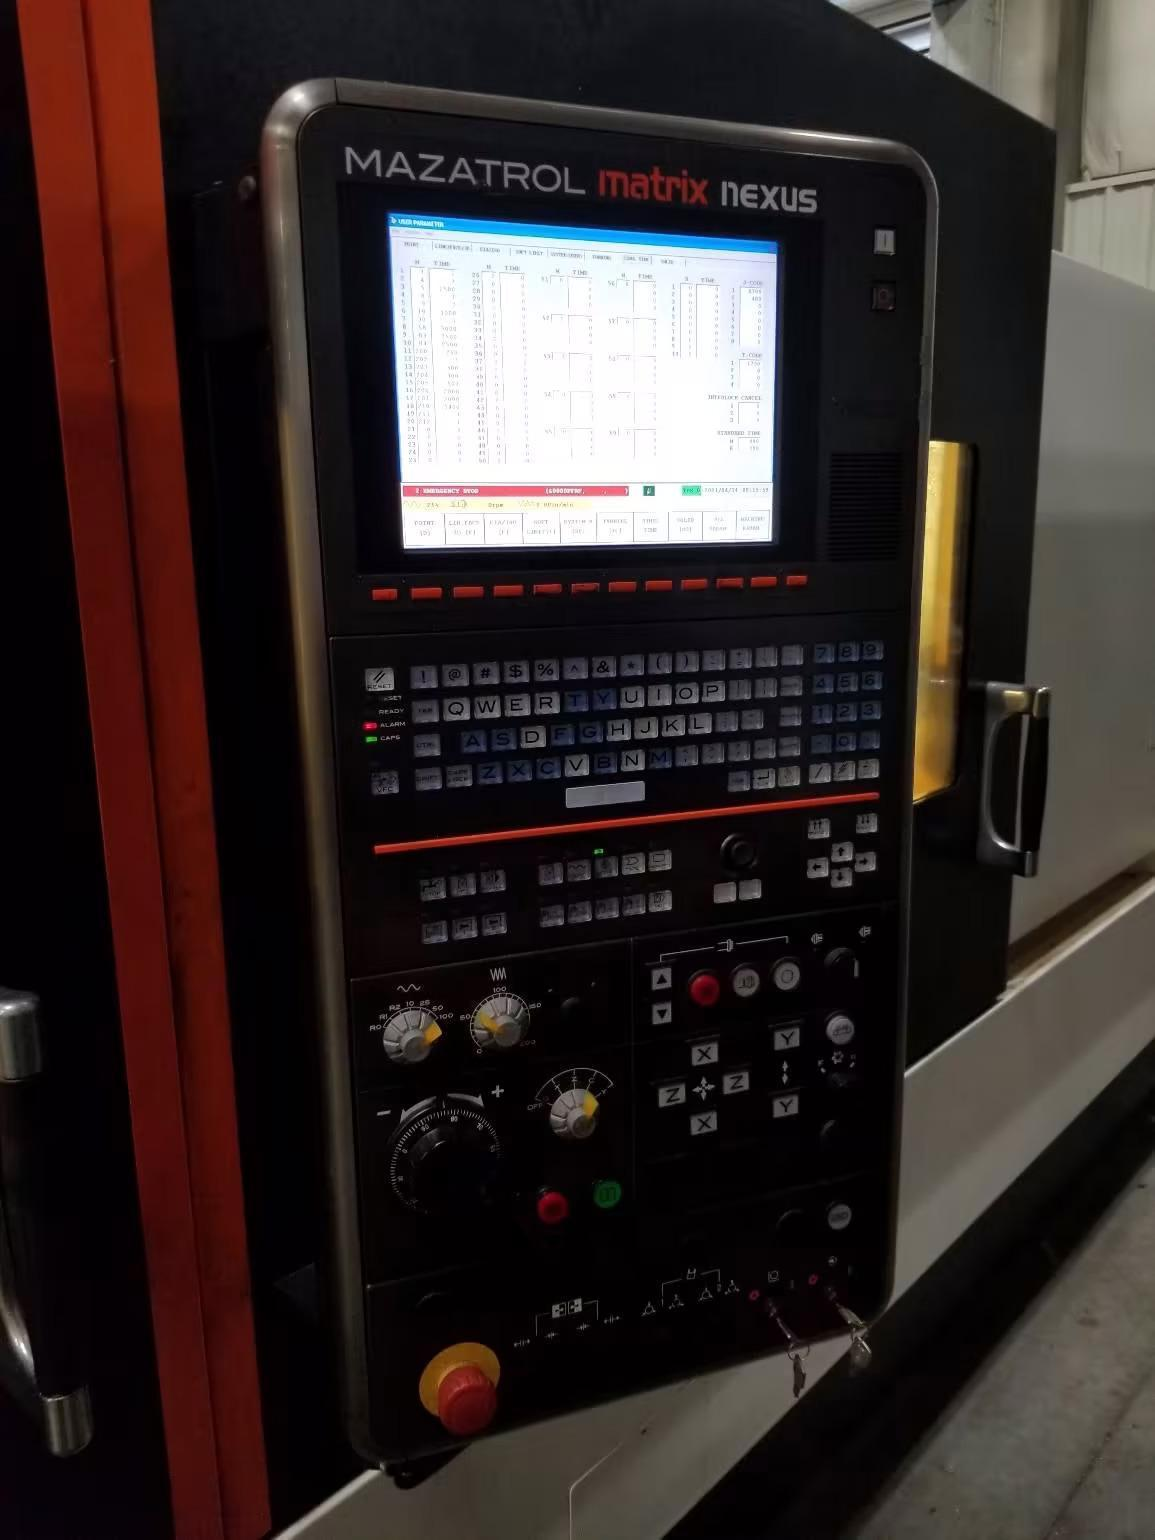 """MAZAK QUICK TURN NEXUS 350-II MY CNC LATHE, Matrix Nexus CNC Control, 29.5"""" Swing, 82"""" Between Centers, 12"""" 3-Jaw Hyd. Chuck, 4000 RPM Main Spindle,  4"""" Bar Capacity, C-Axis, Y-Axis, 12-Position Turret with Live Tooling, Tool Setter, Chip Conveyor, New 2012."""